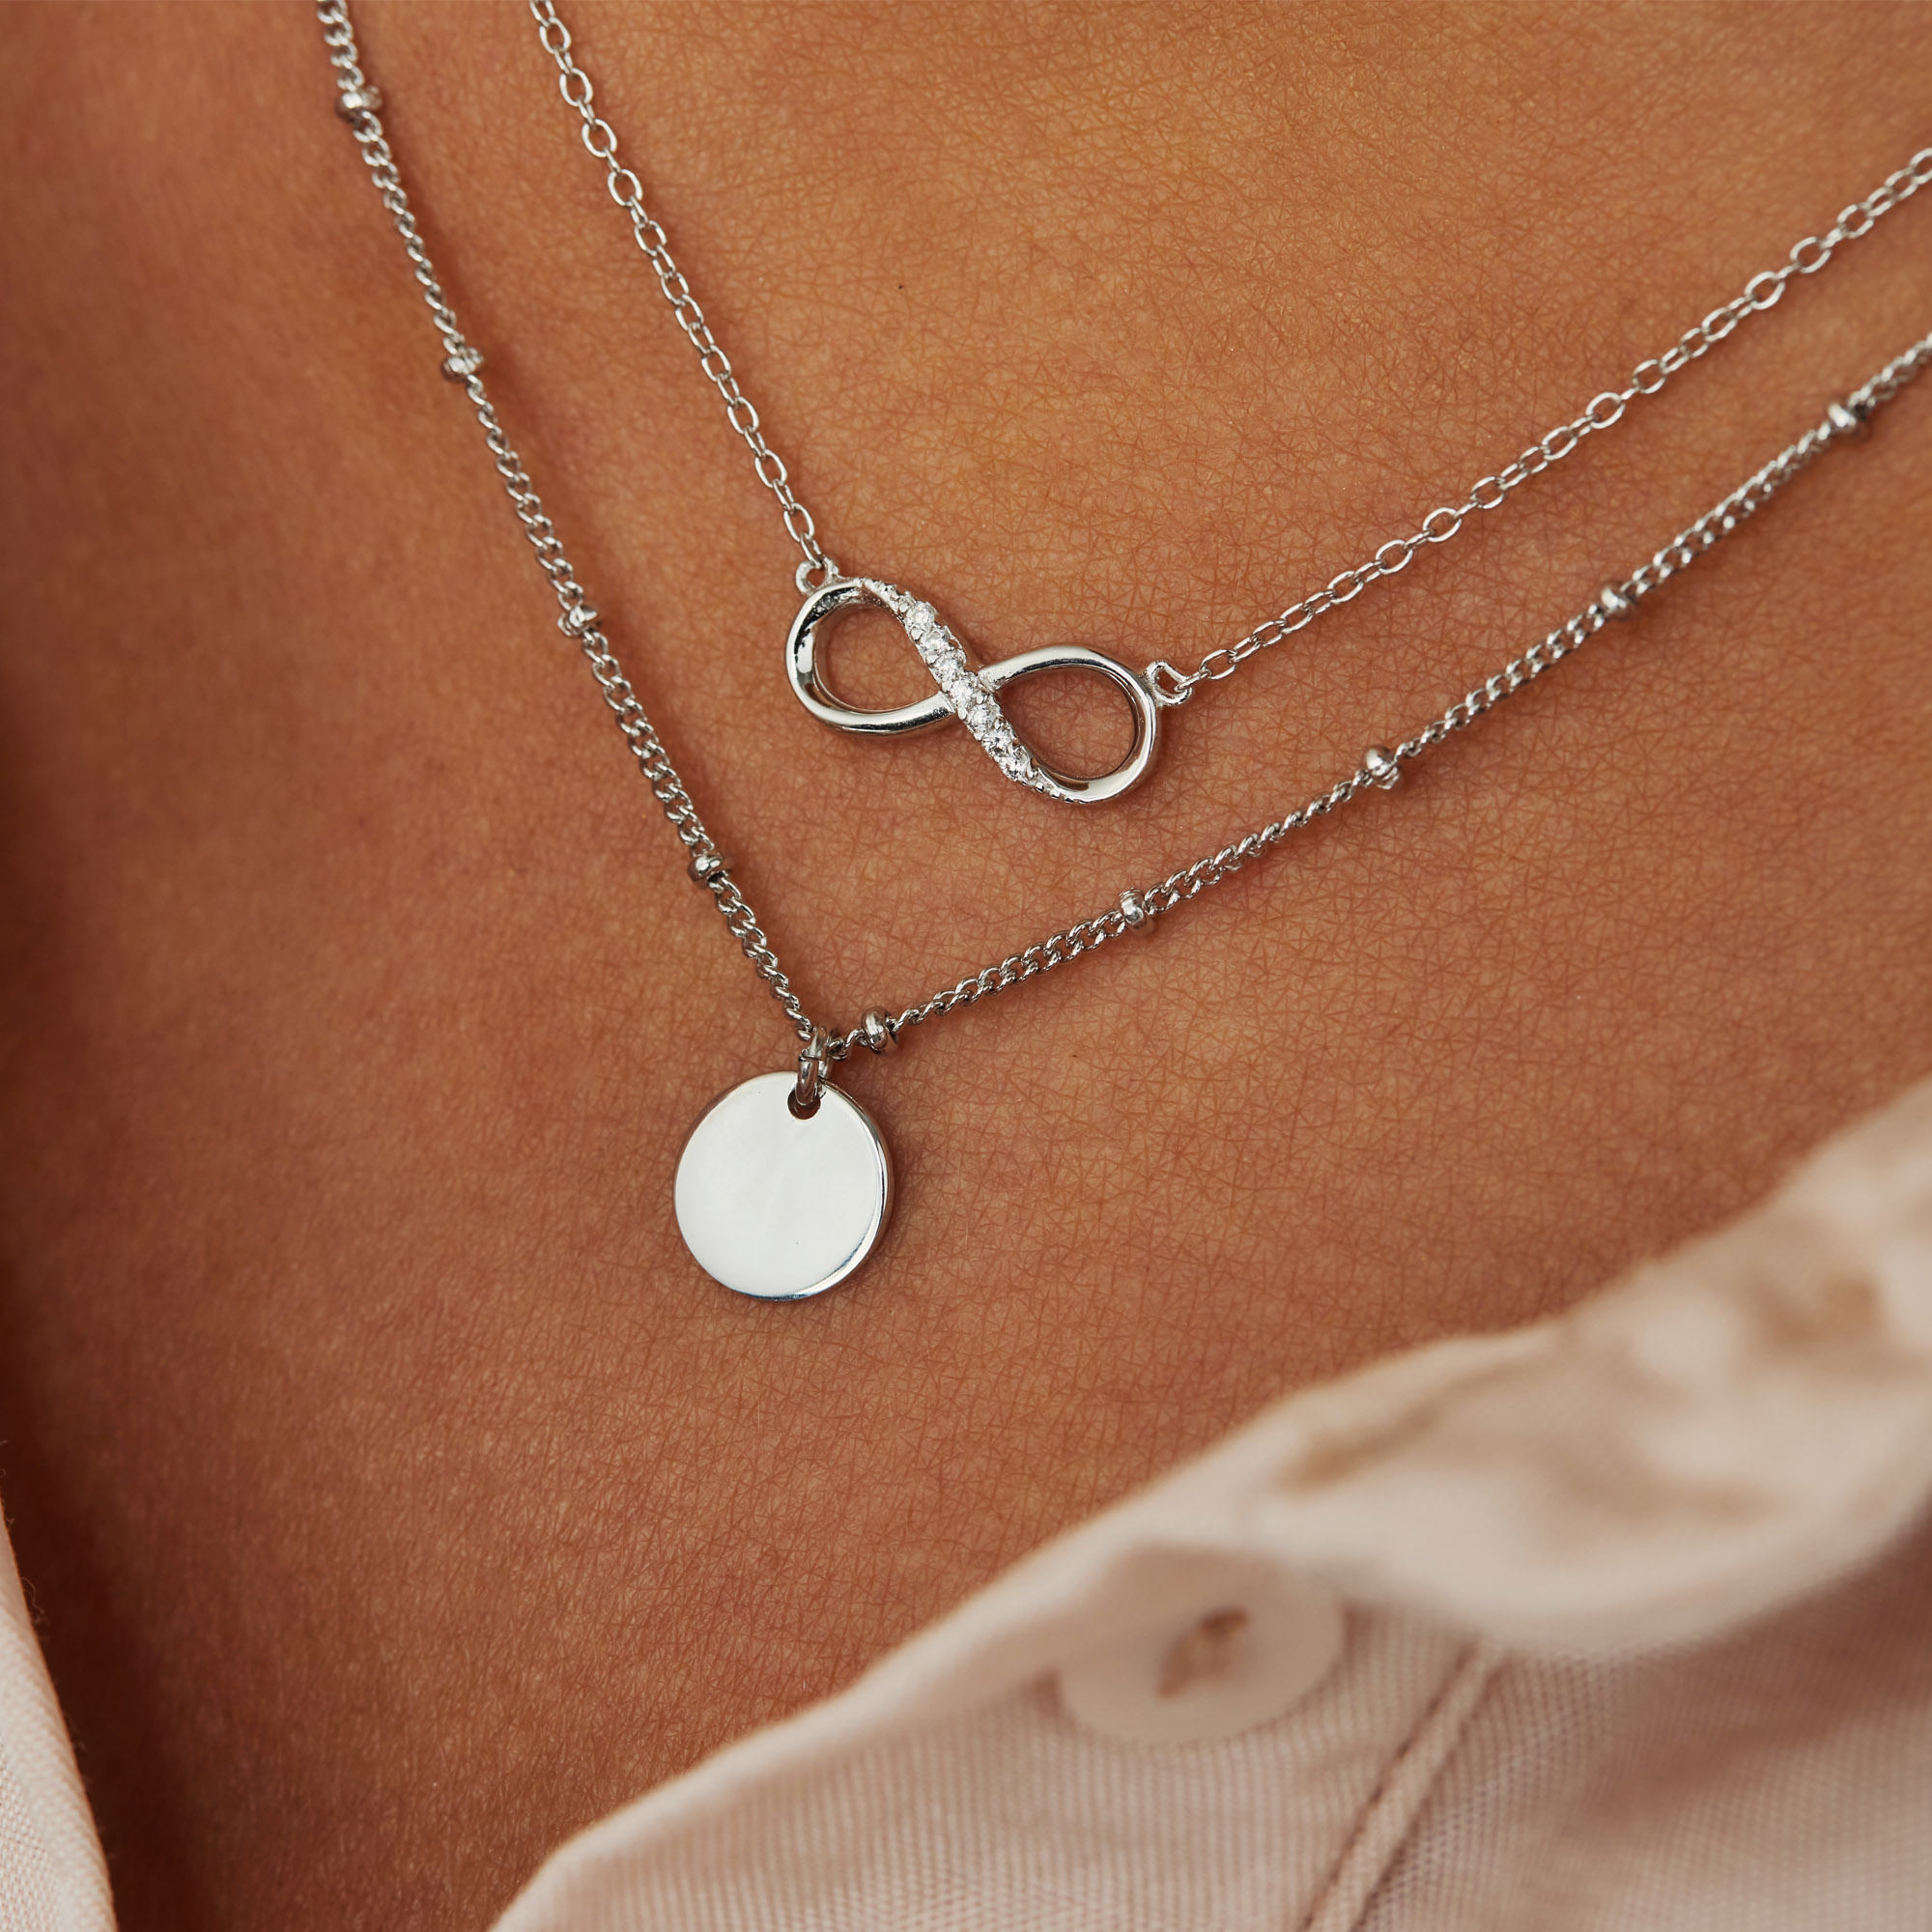 Selected Jewels Julie Emilie 925 sterling zilveren infinity ketting